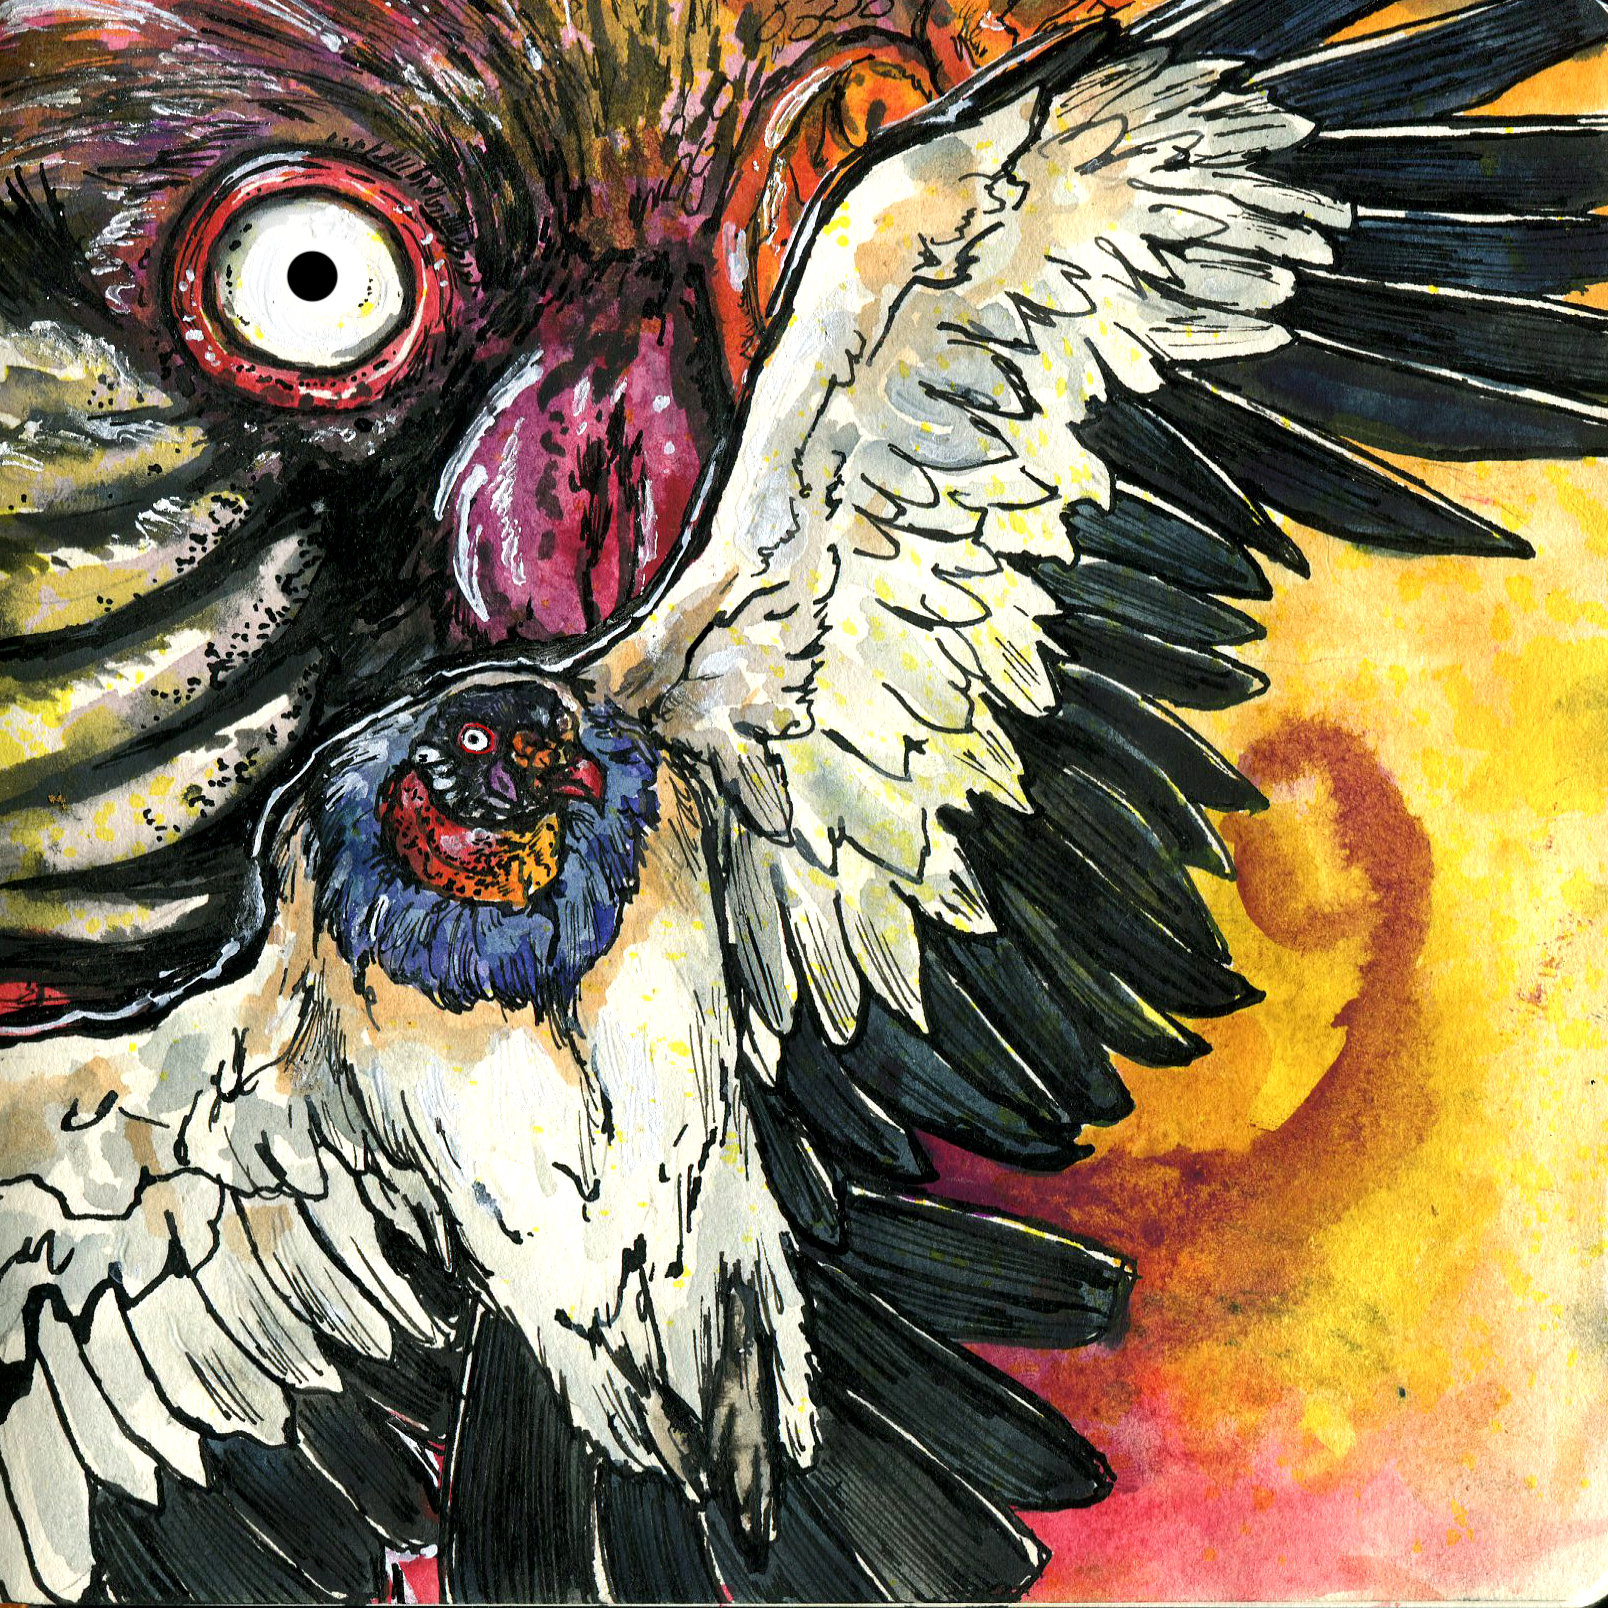 Copy of 553. King Vulture